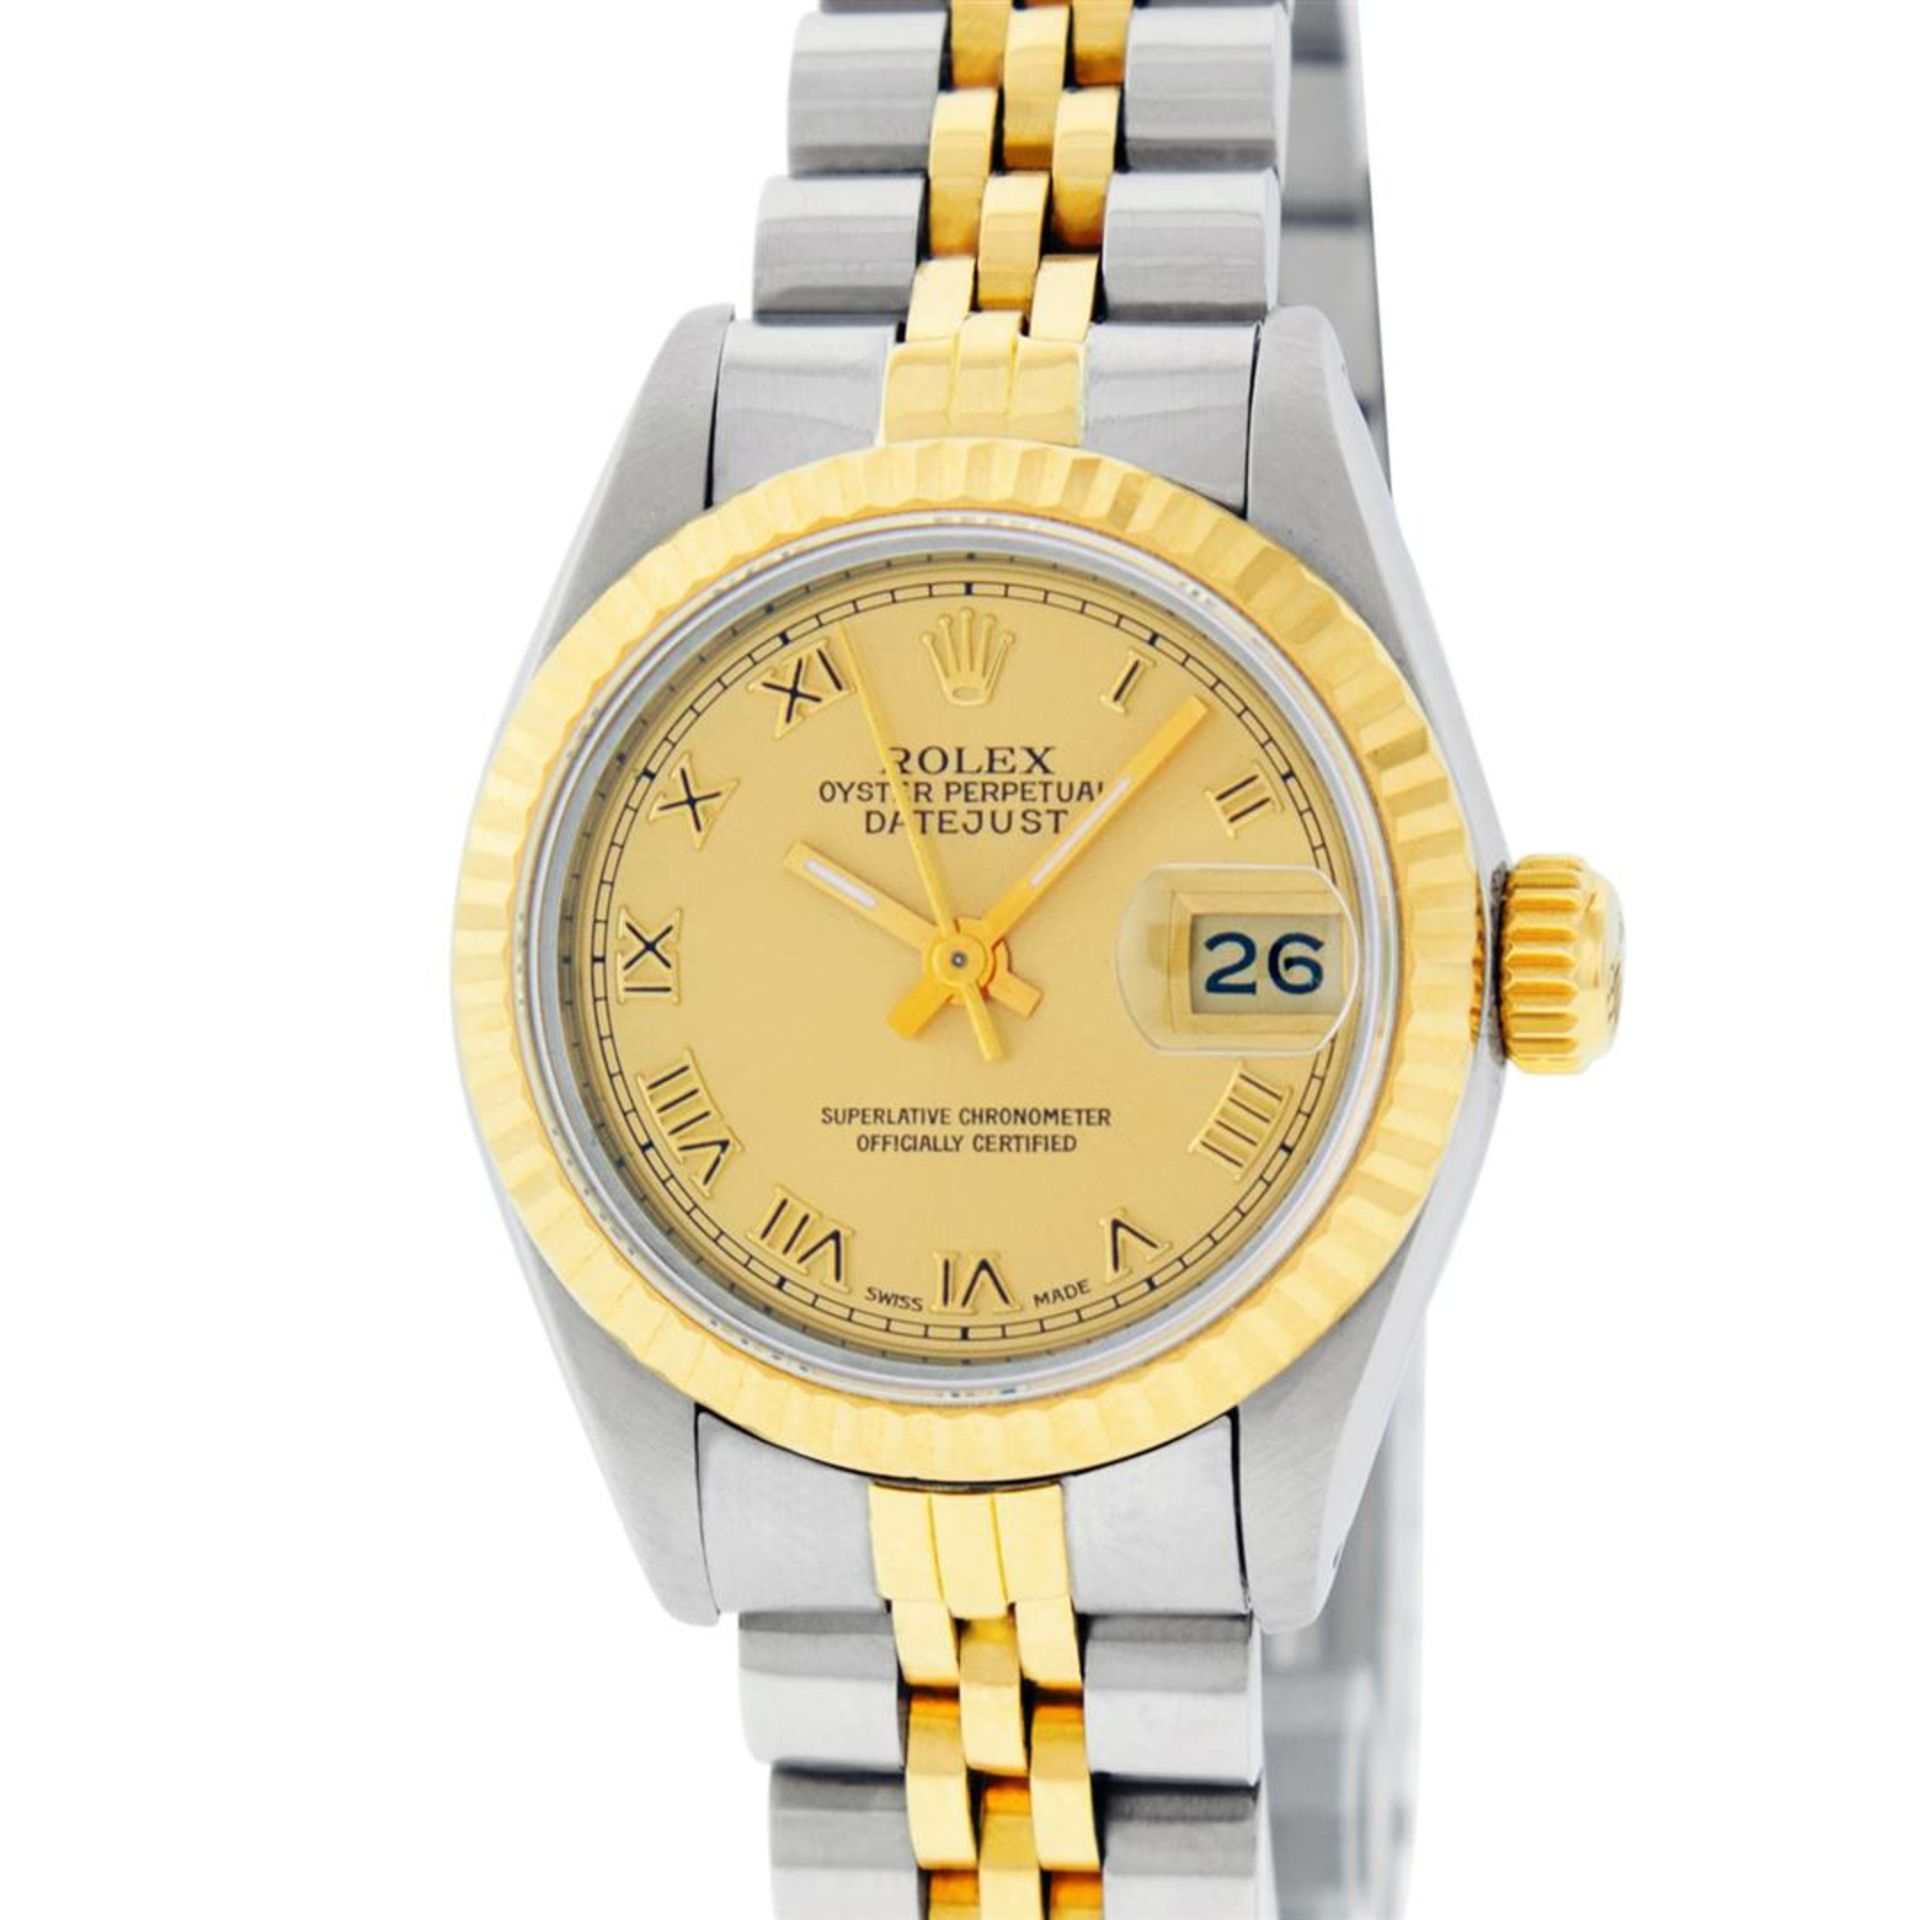 Rolex Ladies 2 Tone Factory Champagne Roman Fluted Datejust Wristwatch - Image 2 of 9